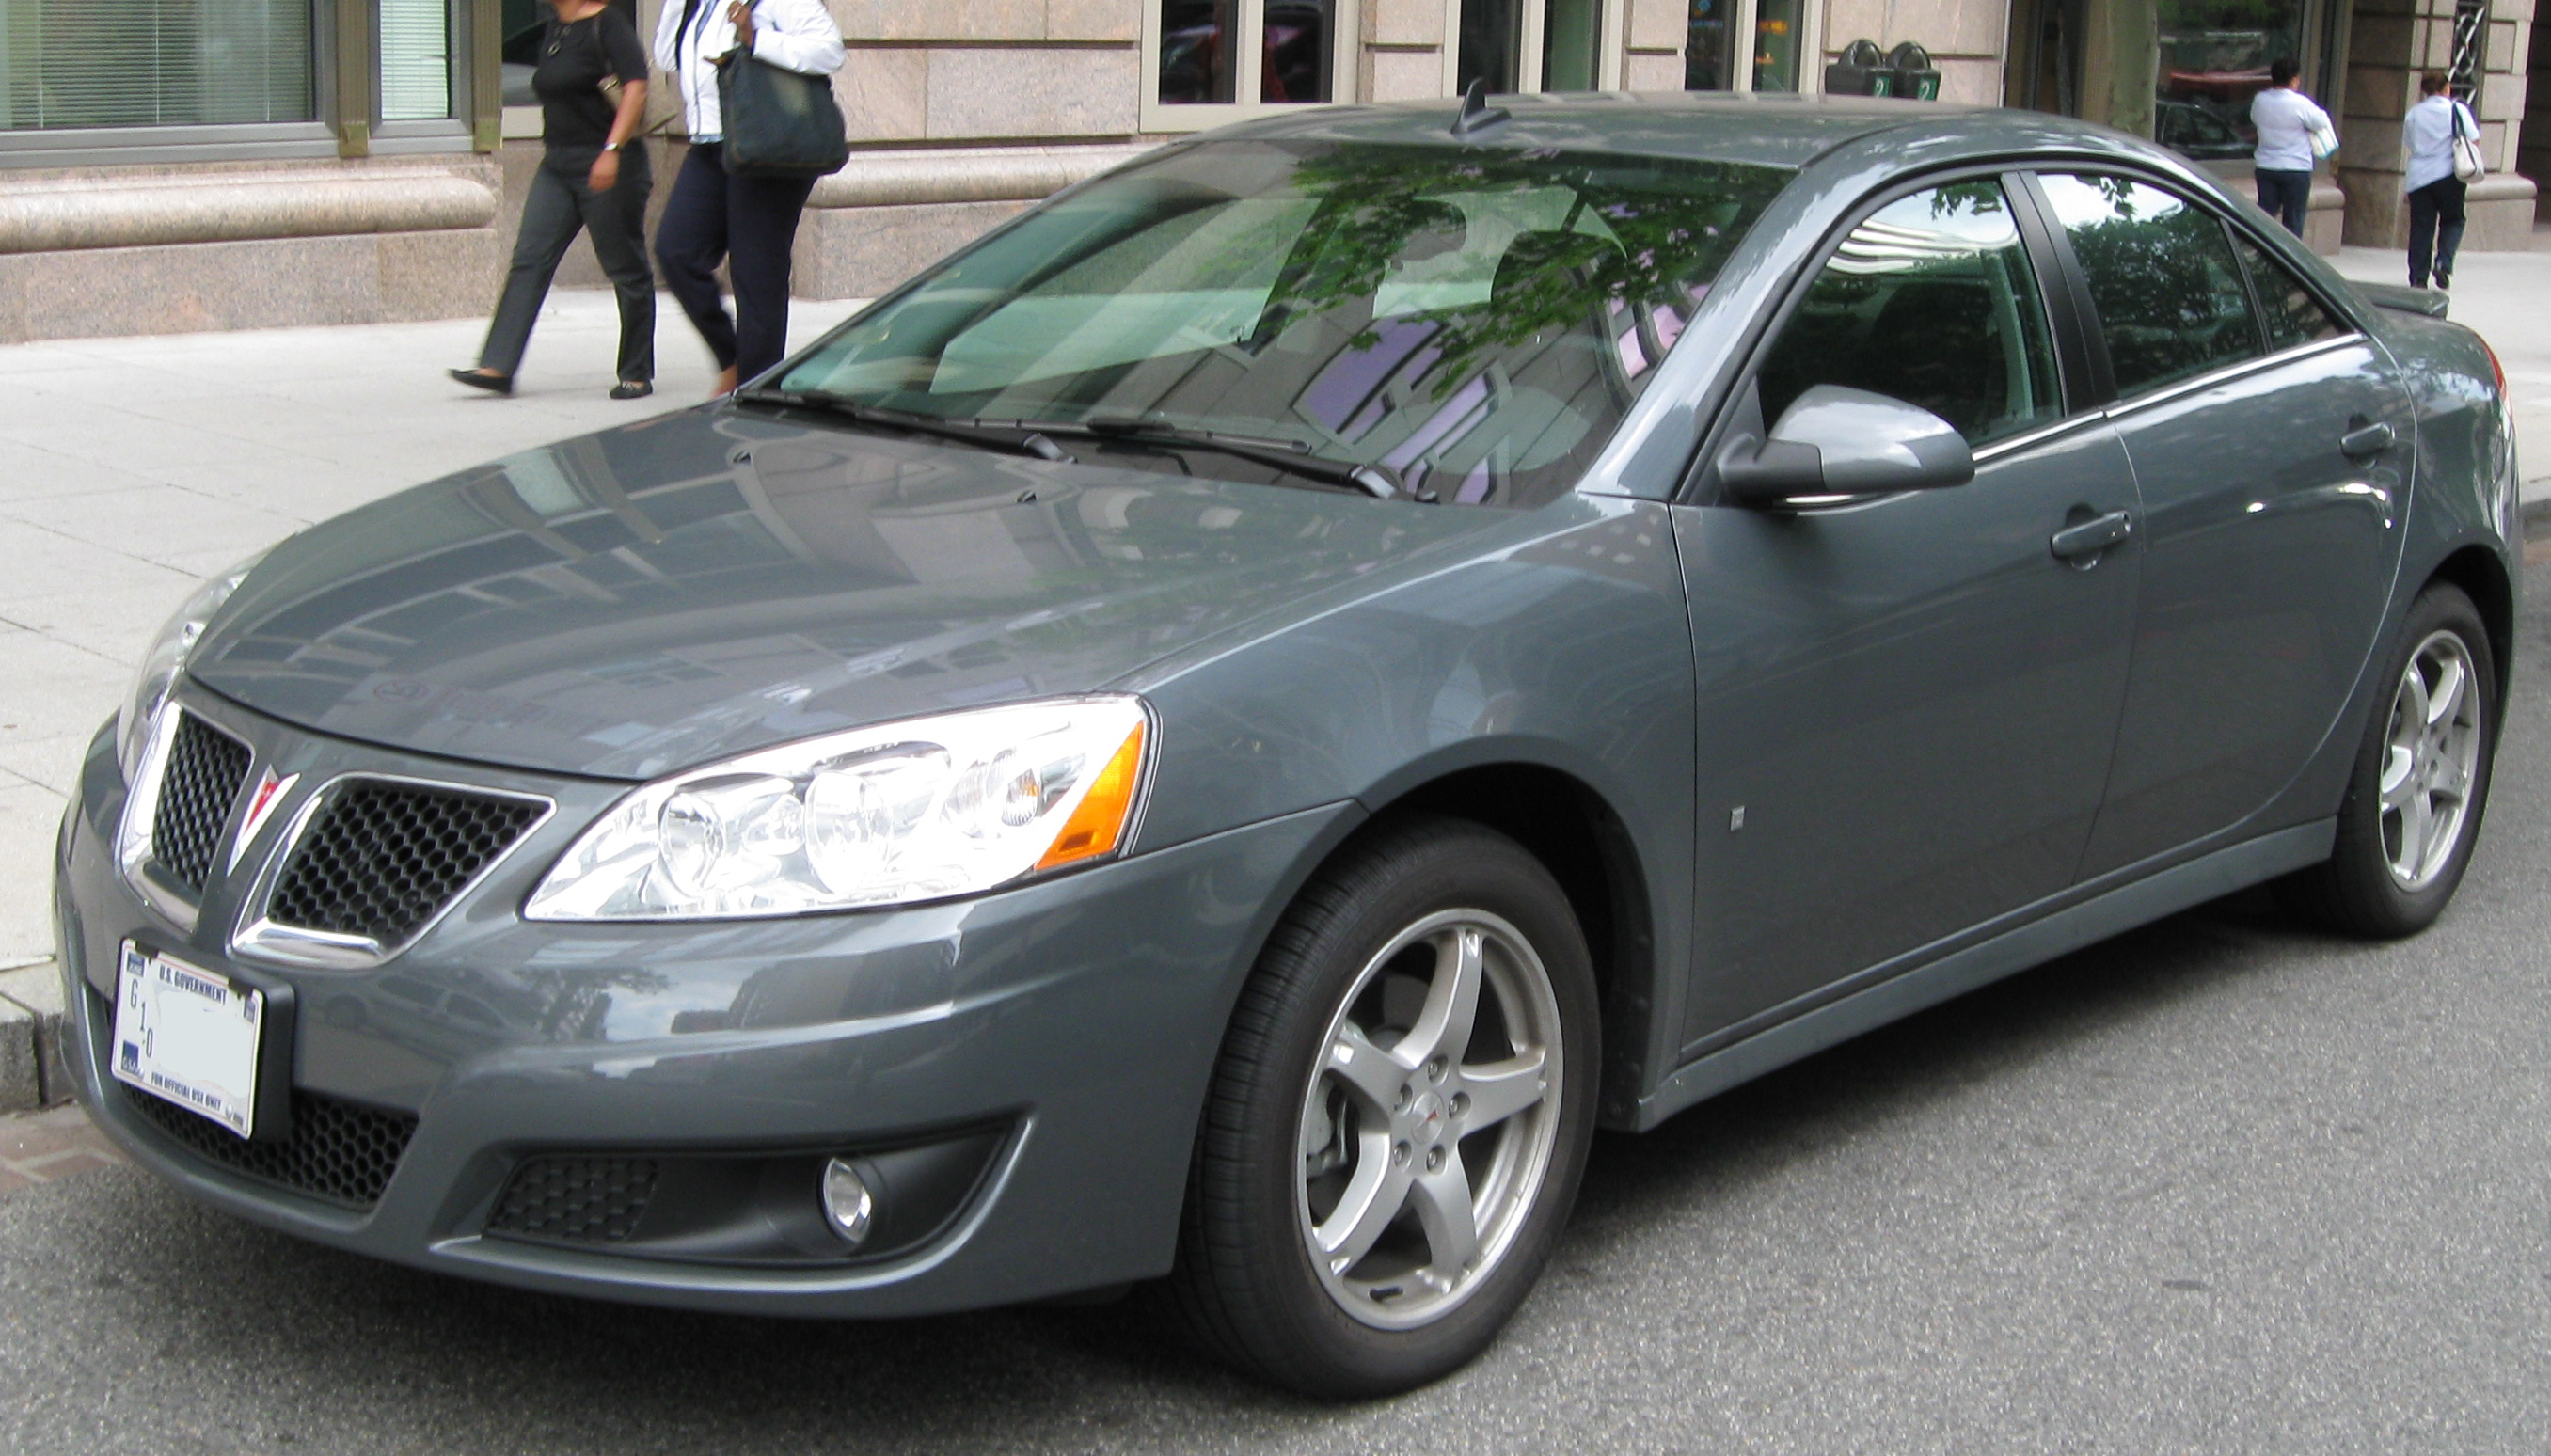 File:2009.5 Pontiac G6 sedan.jpg - Wikipedia, the free encyclopedia